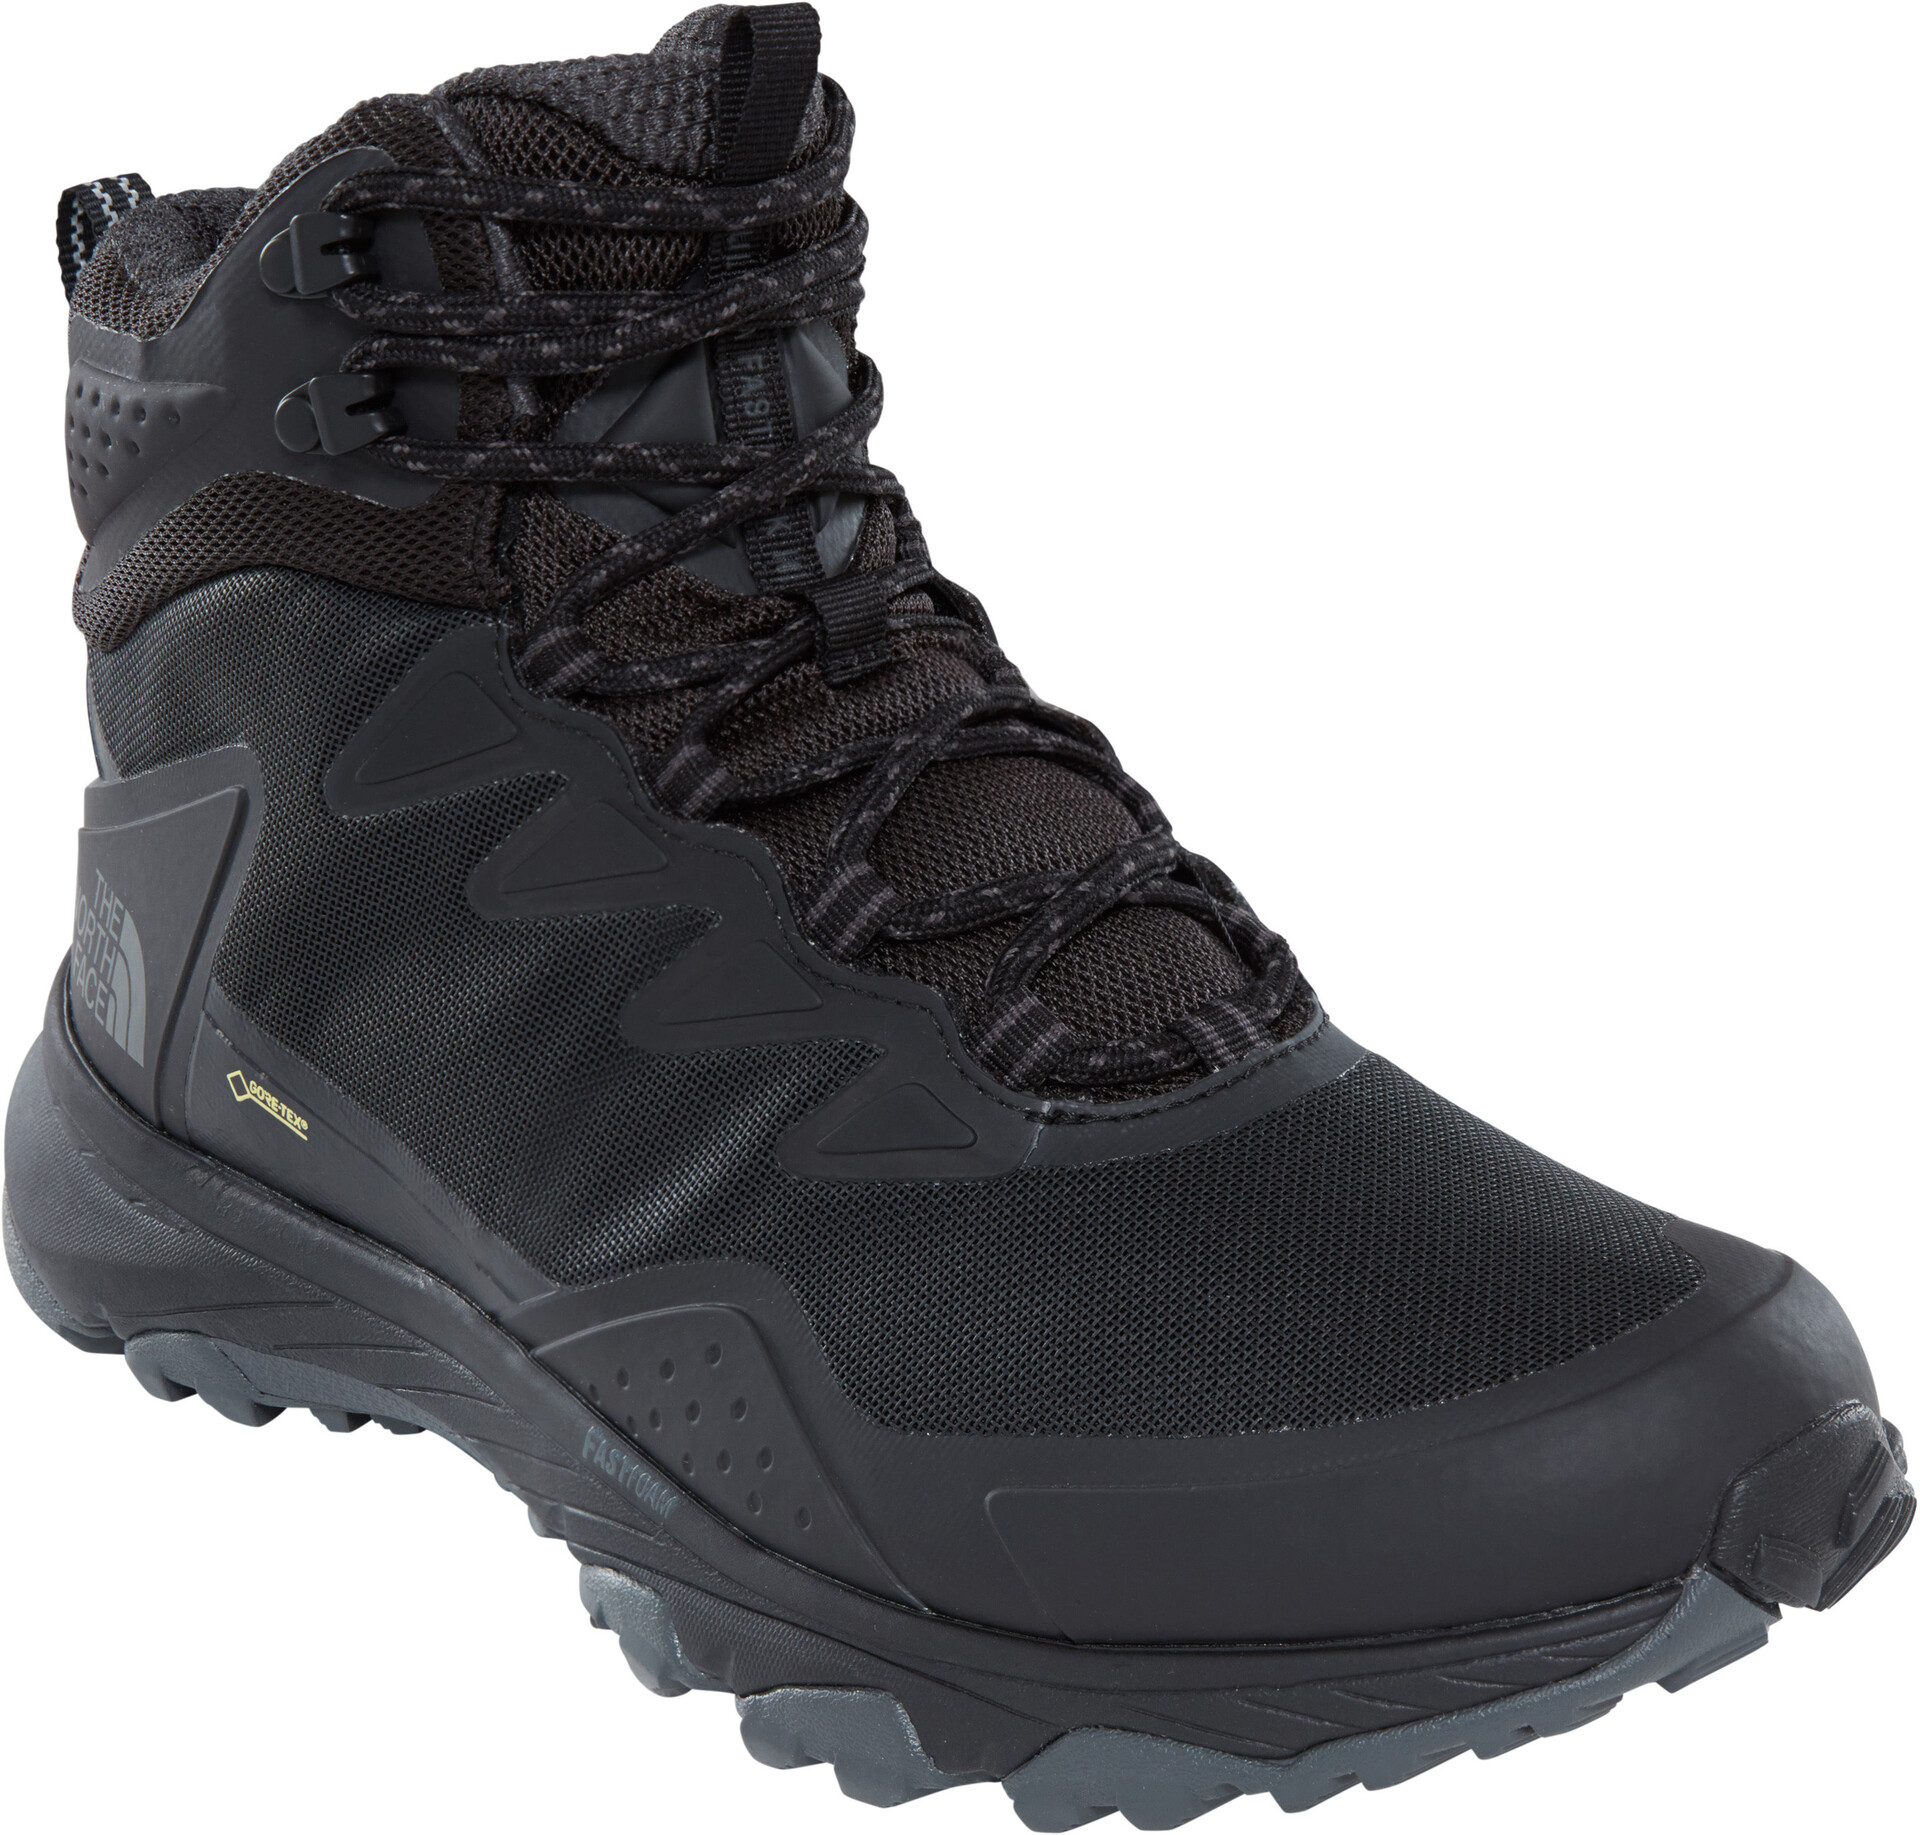 Gtx The Chaussures Homme Ultra North Mid Iii Face Fastpack Noir qAAFwYr4